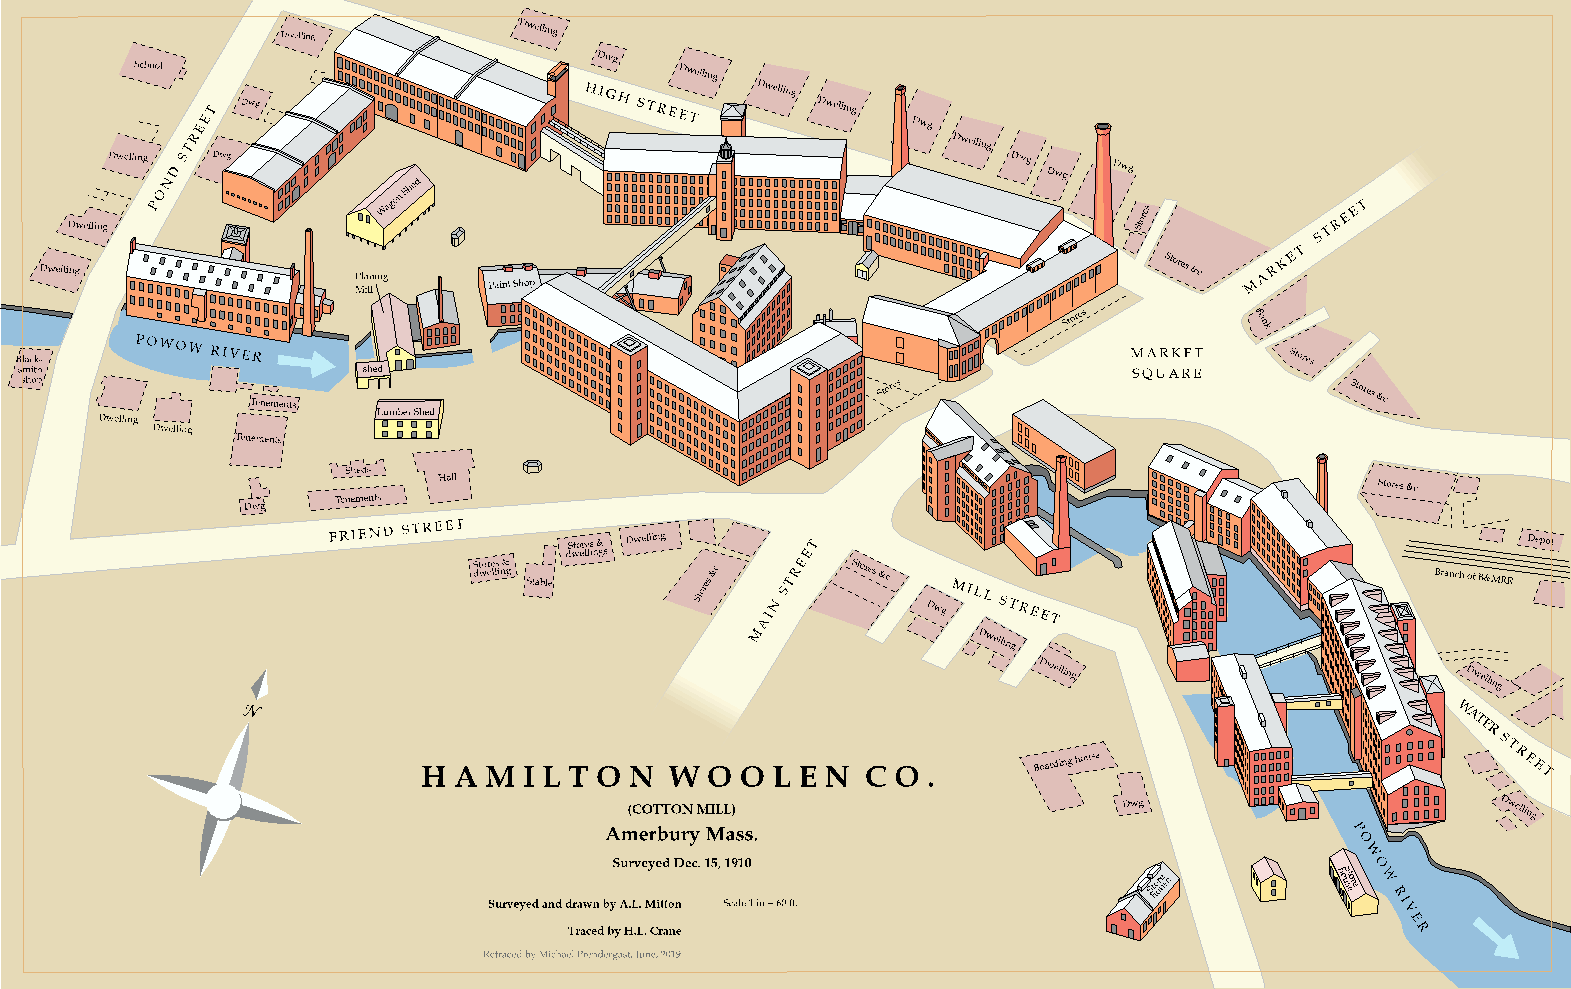 This view shows the millyard at the peak of its development. At this time, the Hamilton Woolen Company operated the mills. The buildings create an unbroken wall along the river. Around 1,000 workers were employed in the textile industry at its peak. Two years after this view was made, the Hamilton Company closed their doors bringing an end to textile making in Amesbury.